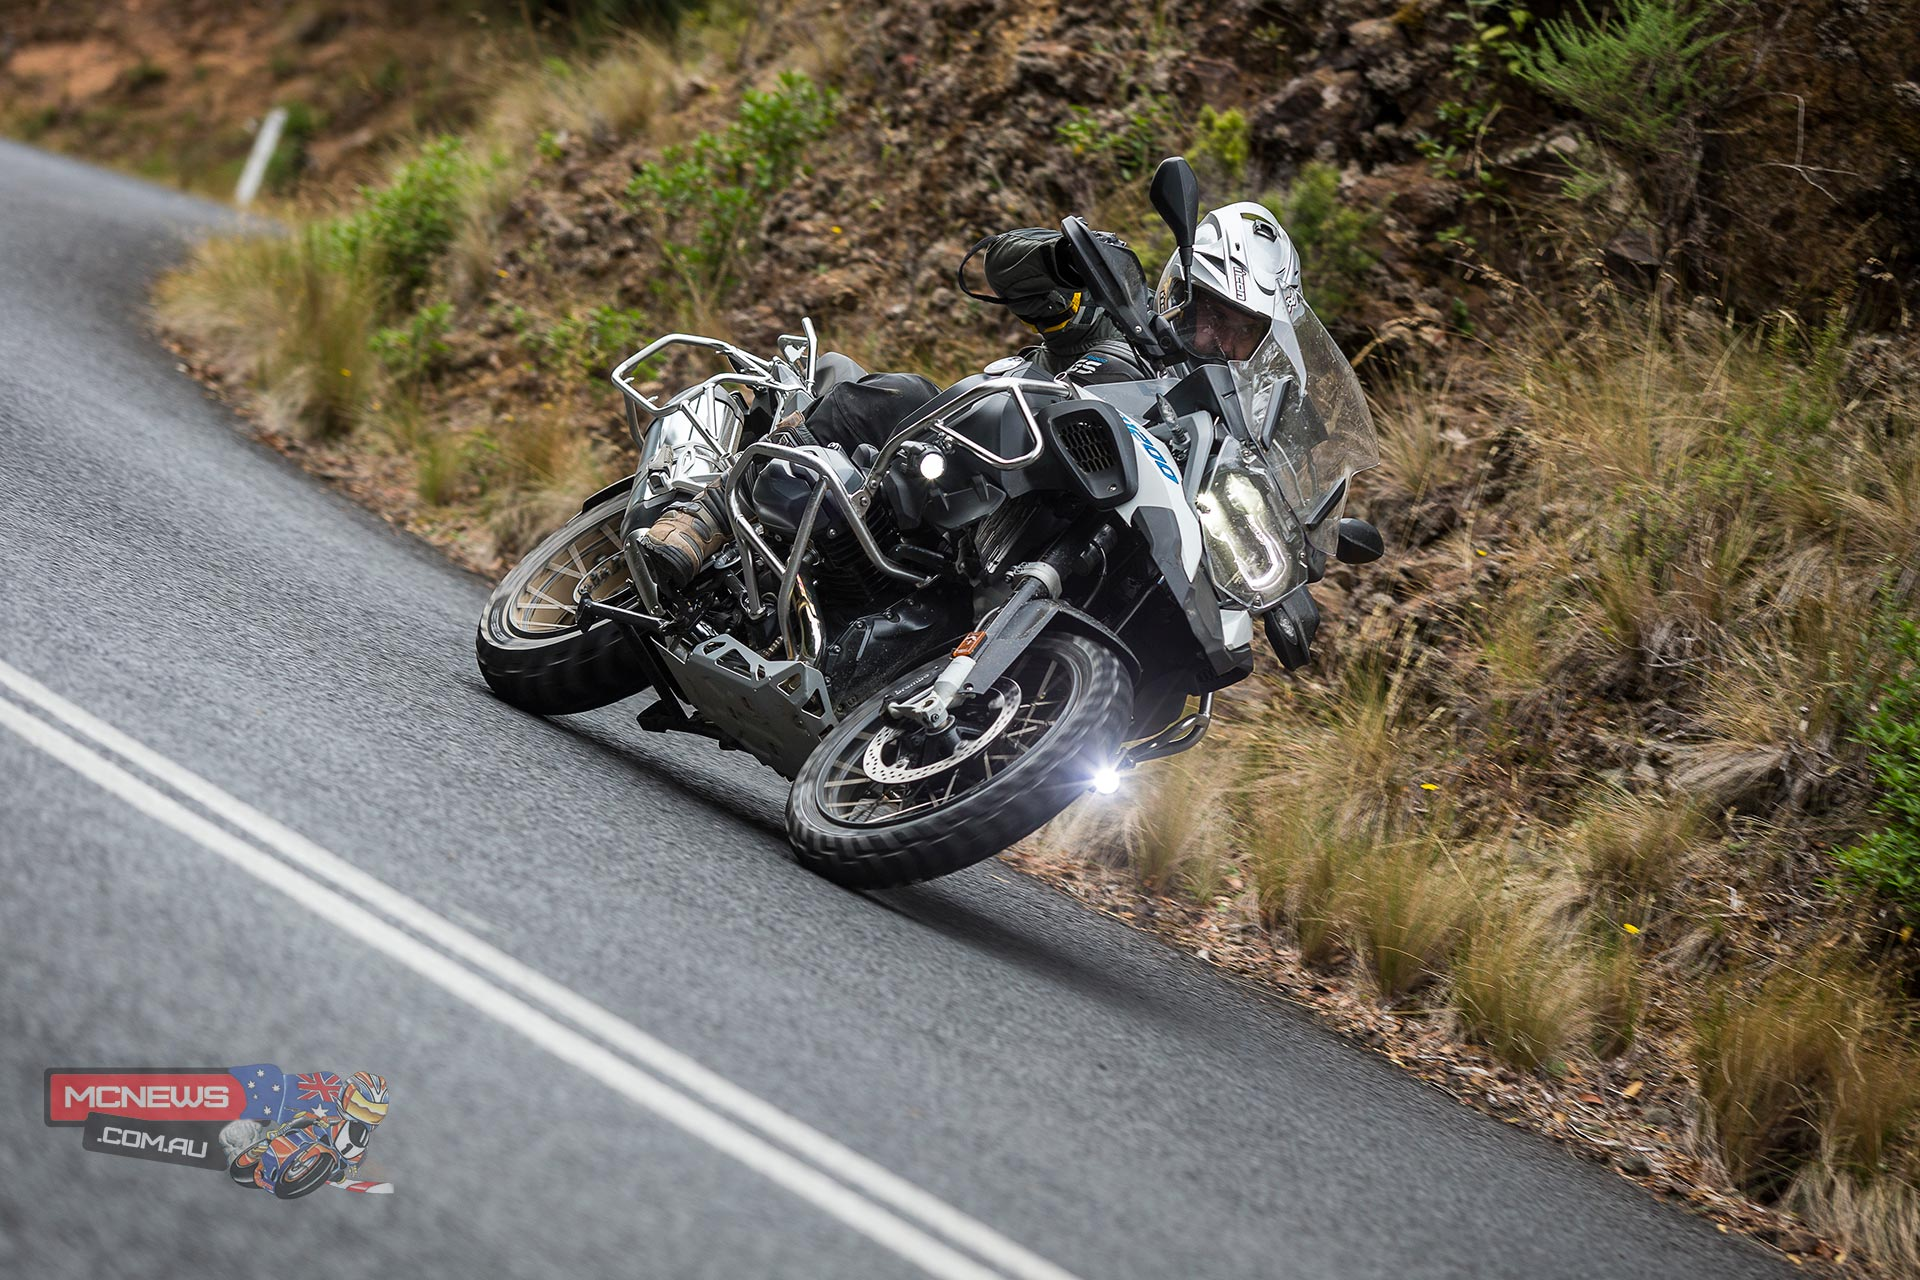 BMW R 1200 GS Adventure Review (2014)